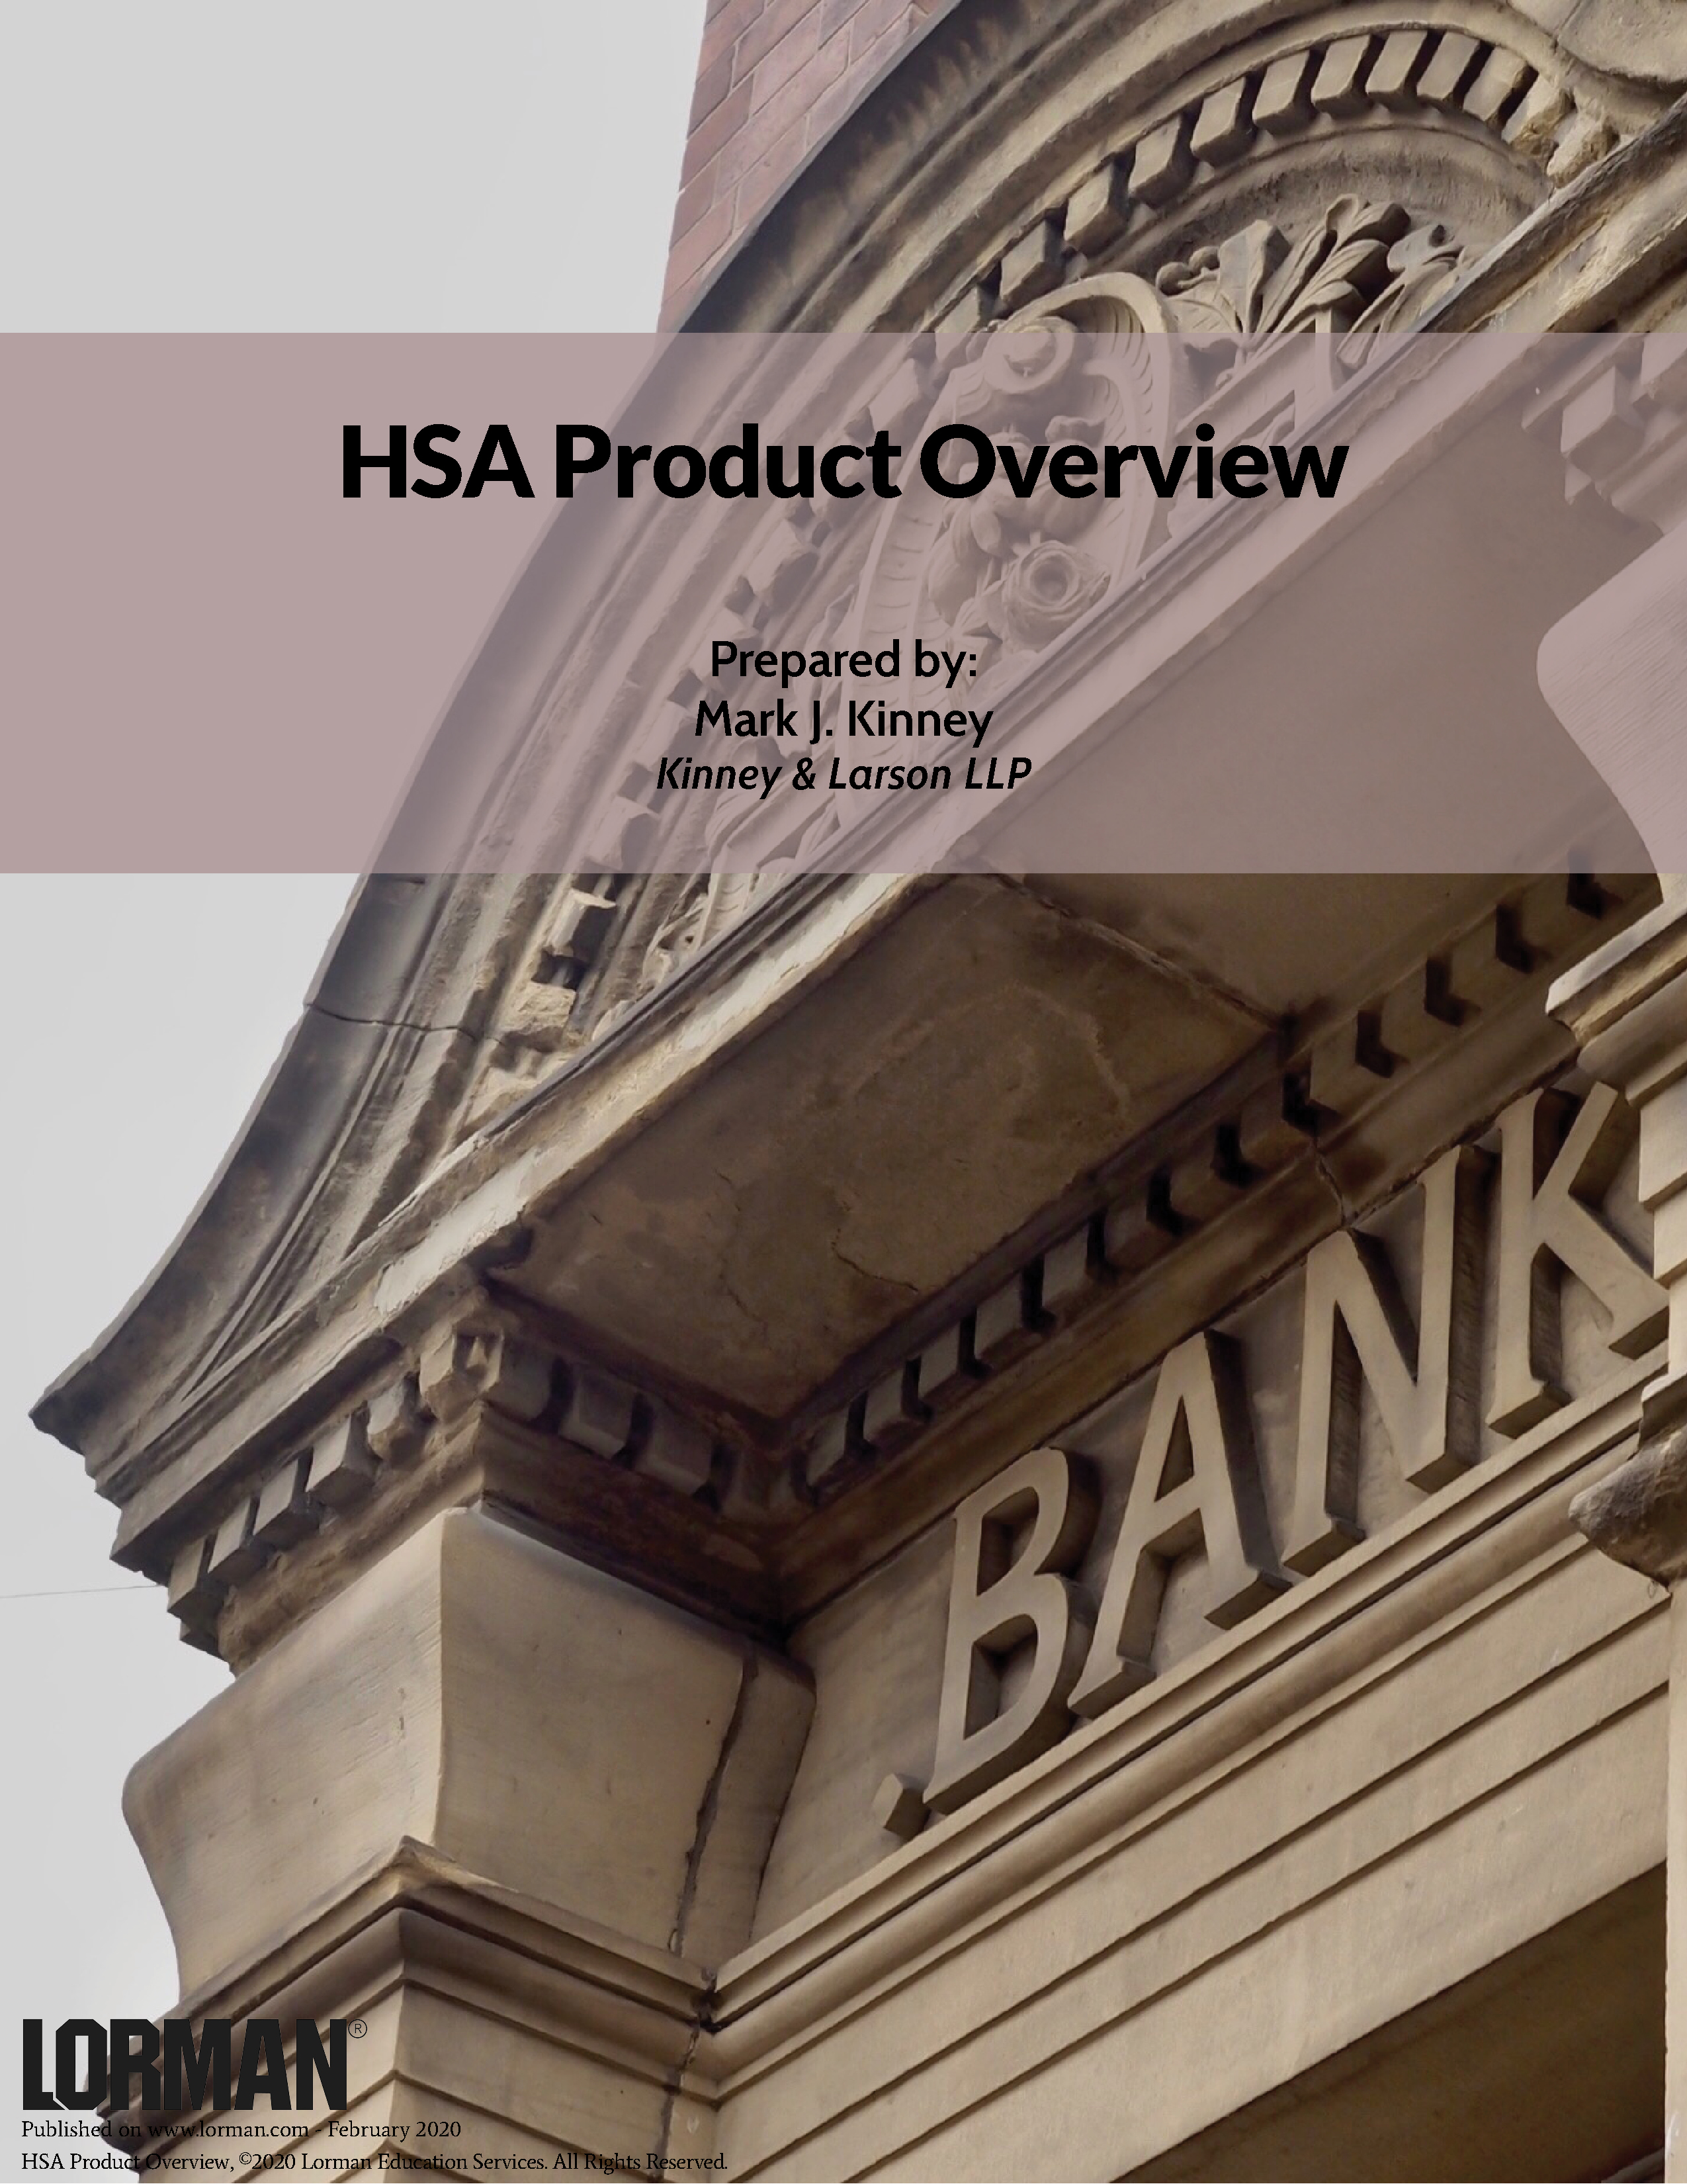 HSA Product Overview